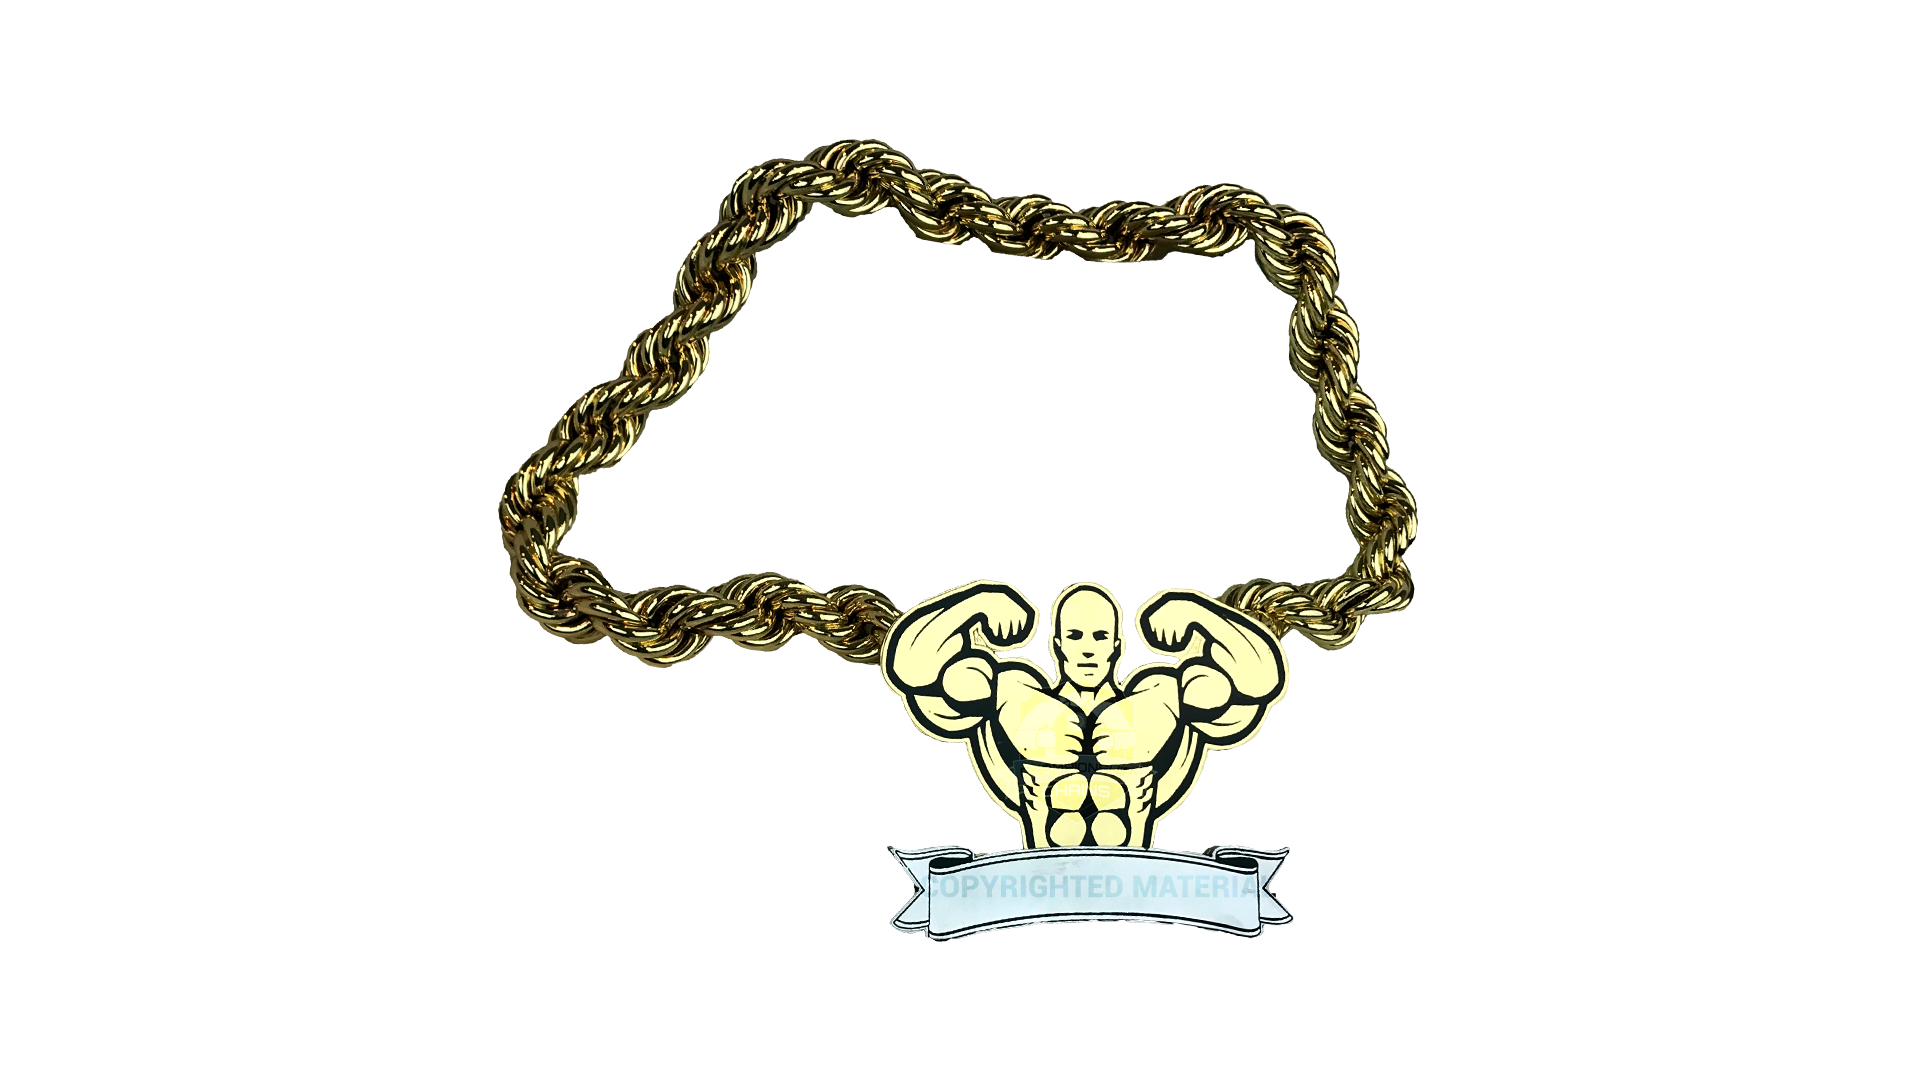 Power customized championship chain image